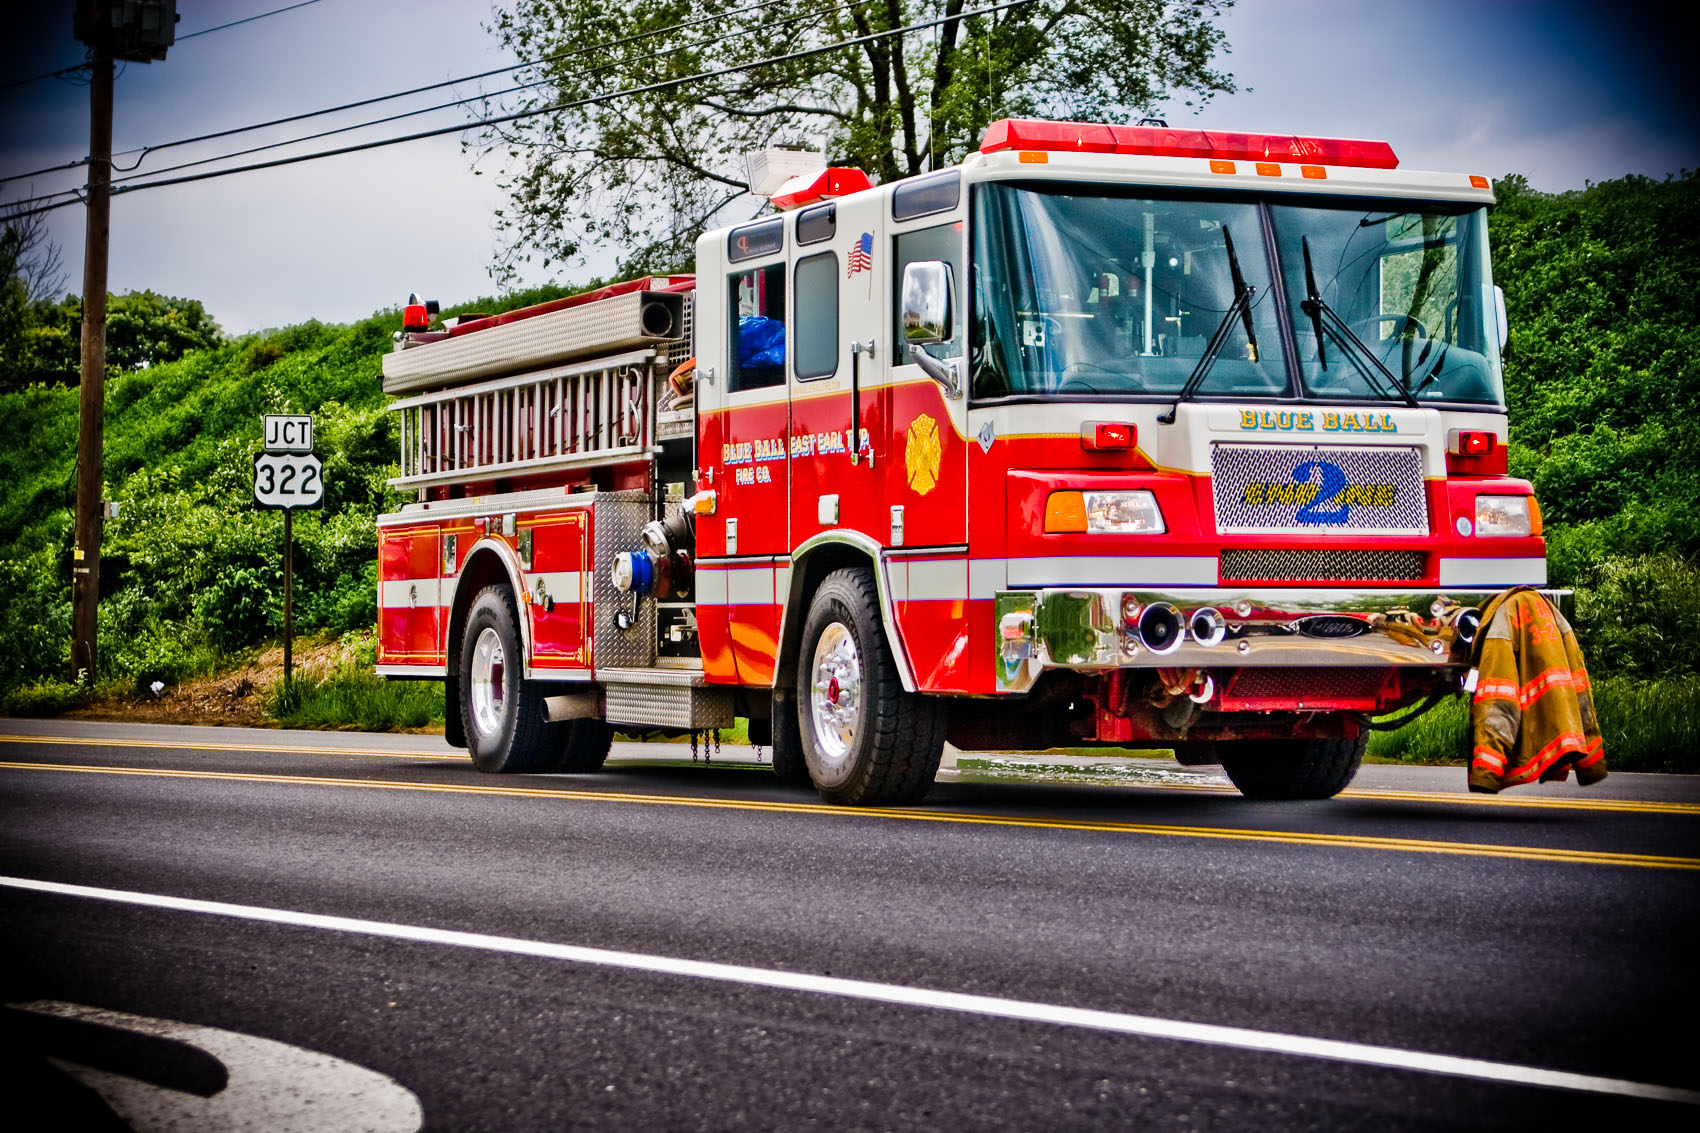 Location Photograph of a Firetruck in Lancaster County, PA | J. Eldon Zimmerman Photography | Lancaster, PA Commercial Photographer